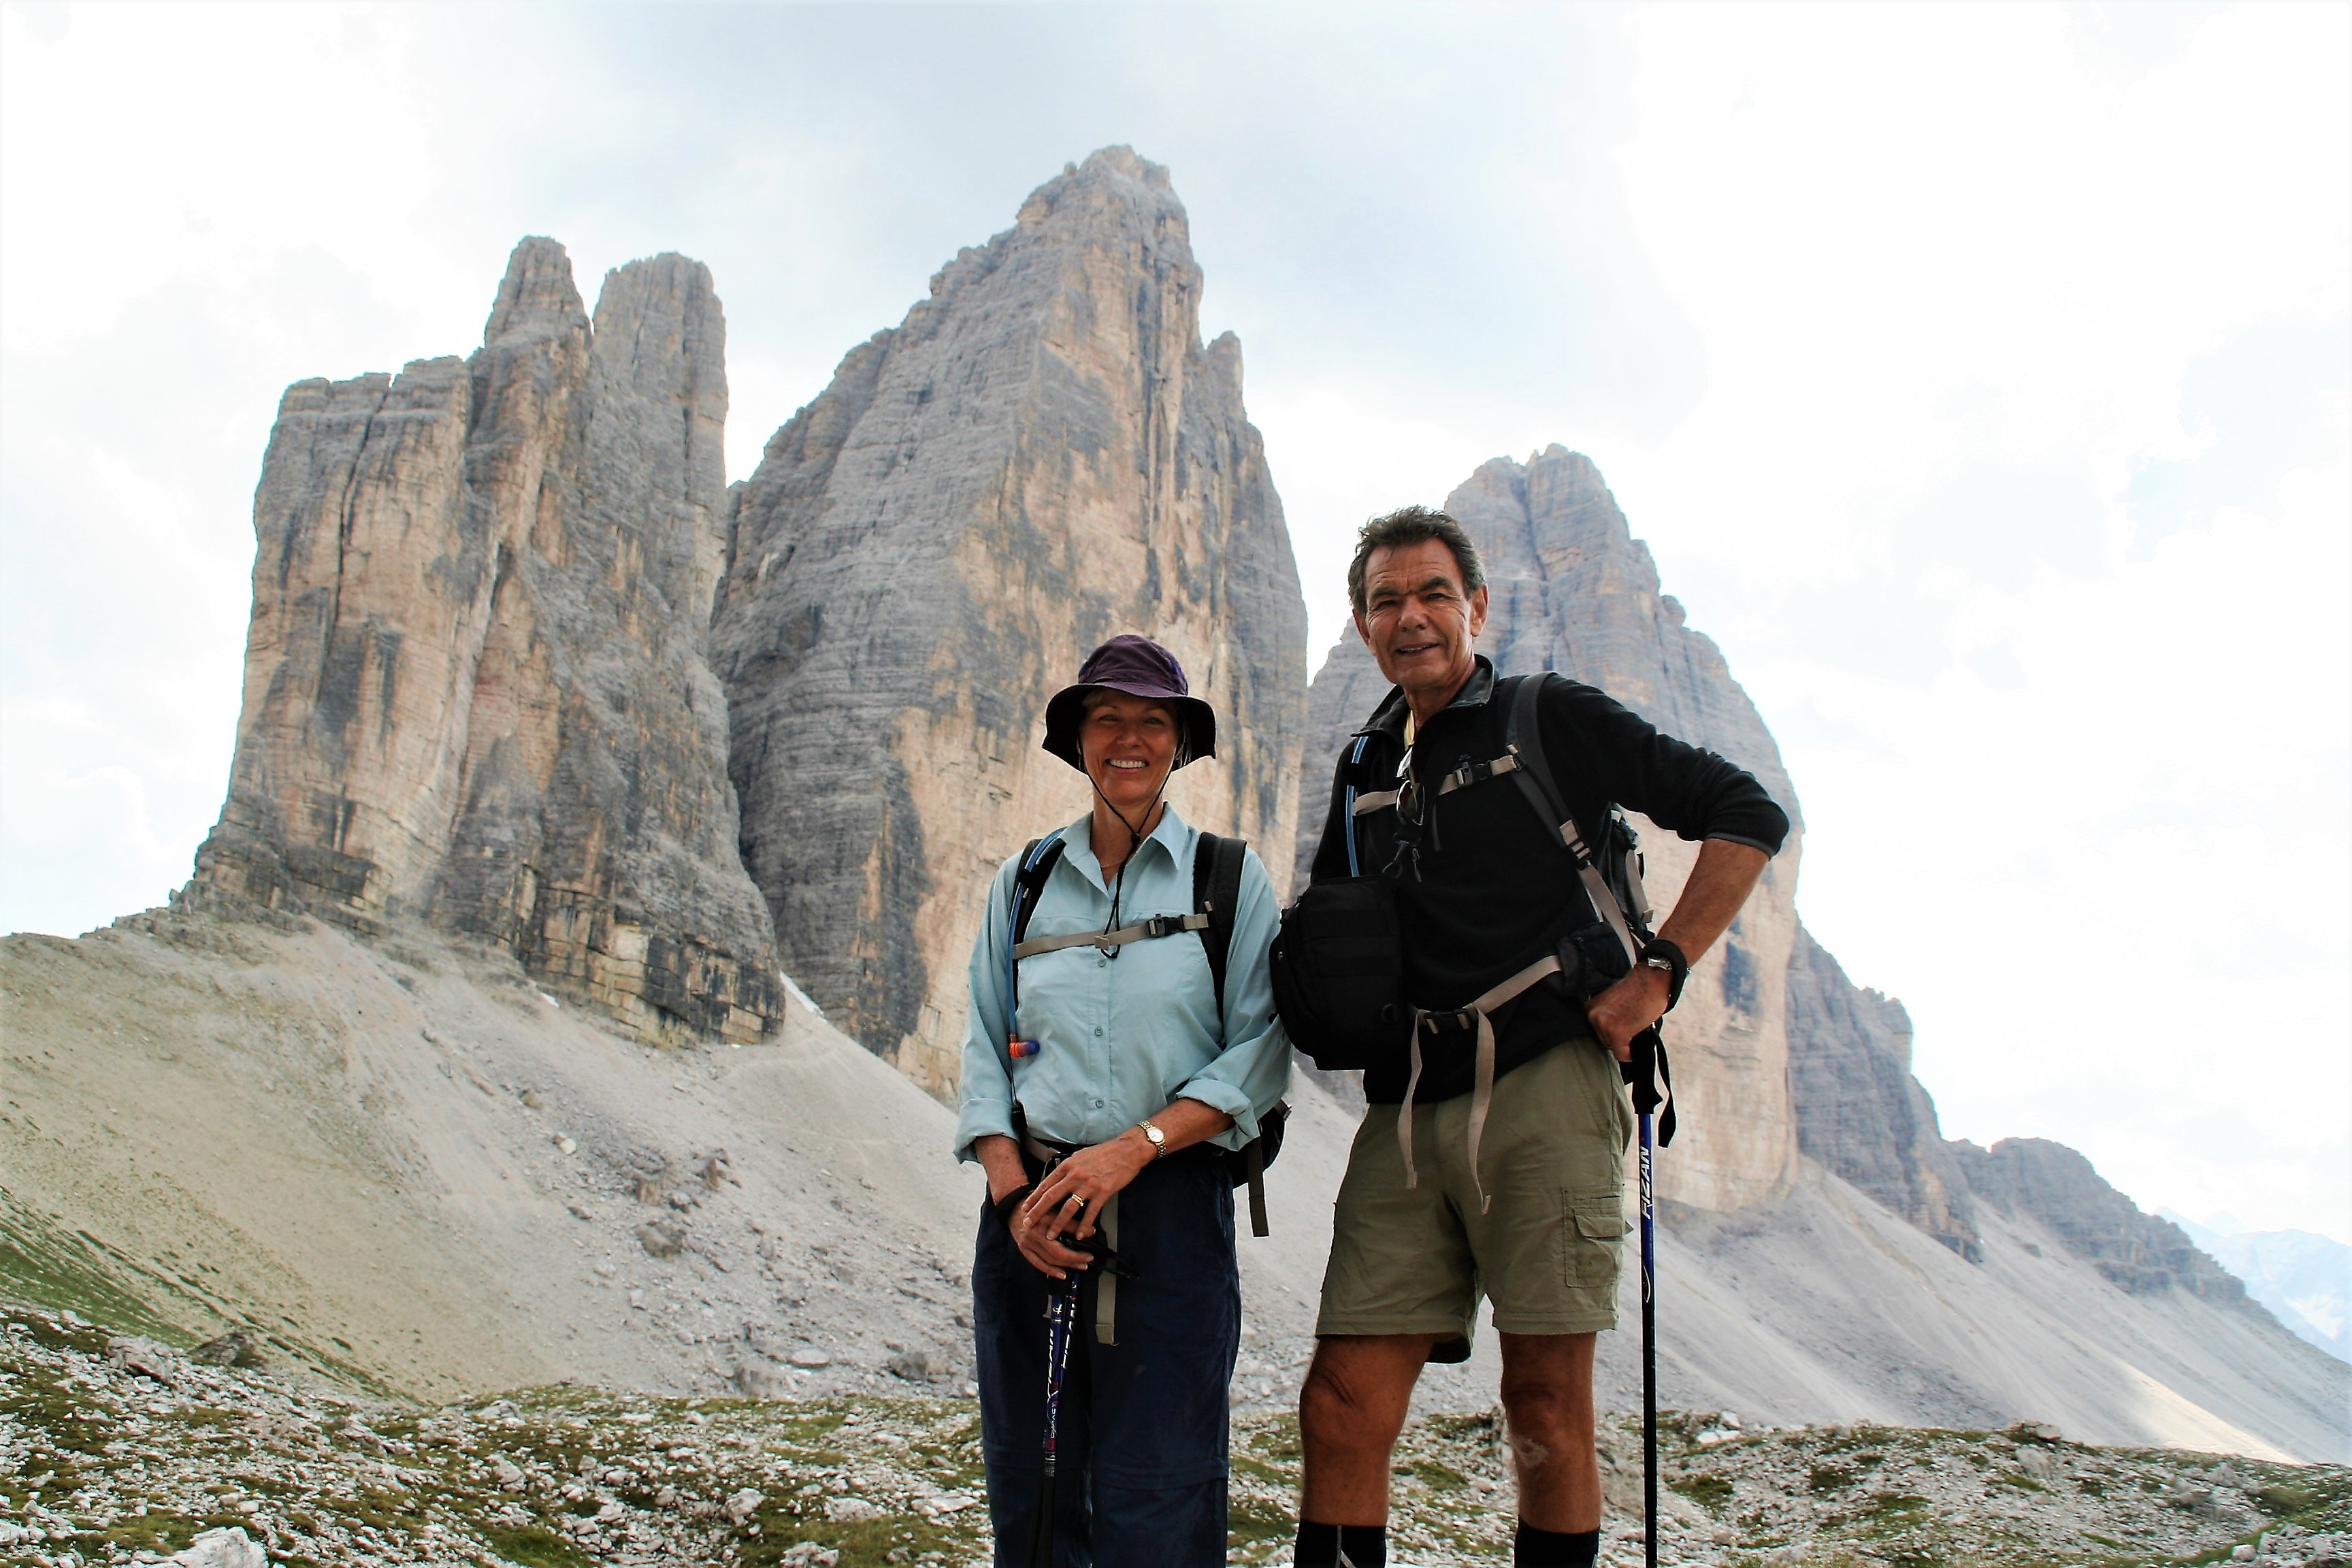 Alpine rose in Tre Cime di Lavaredo